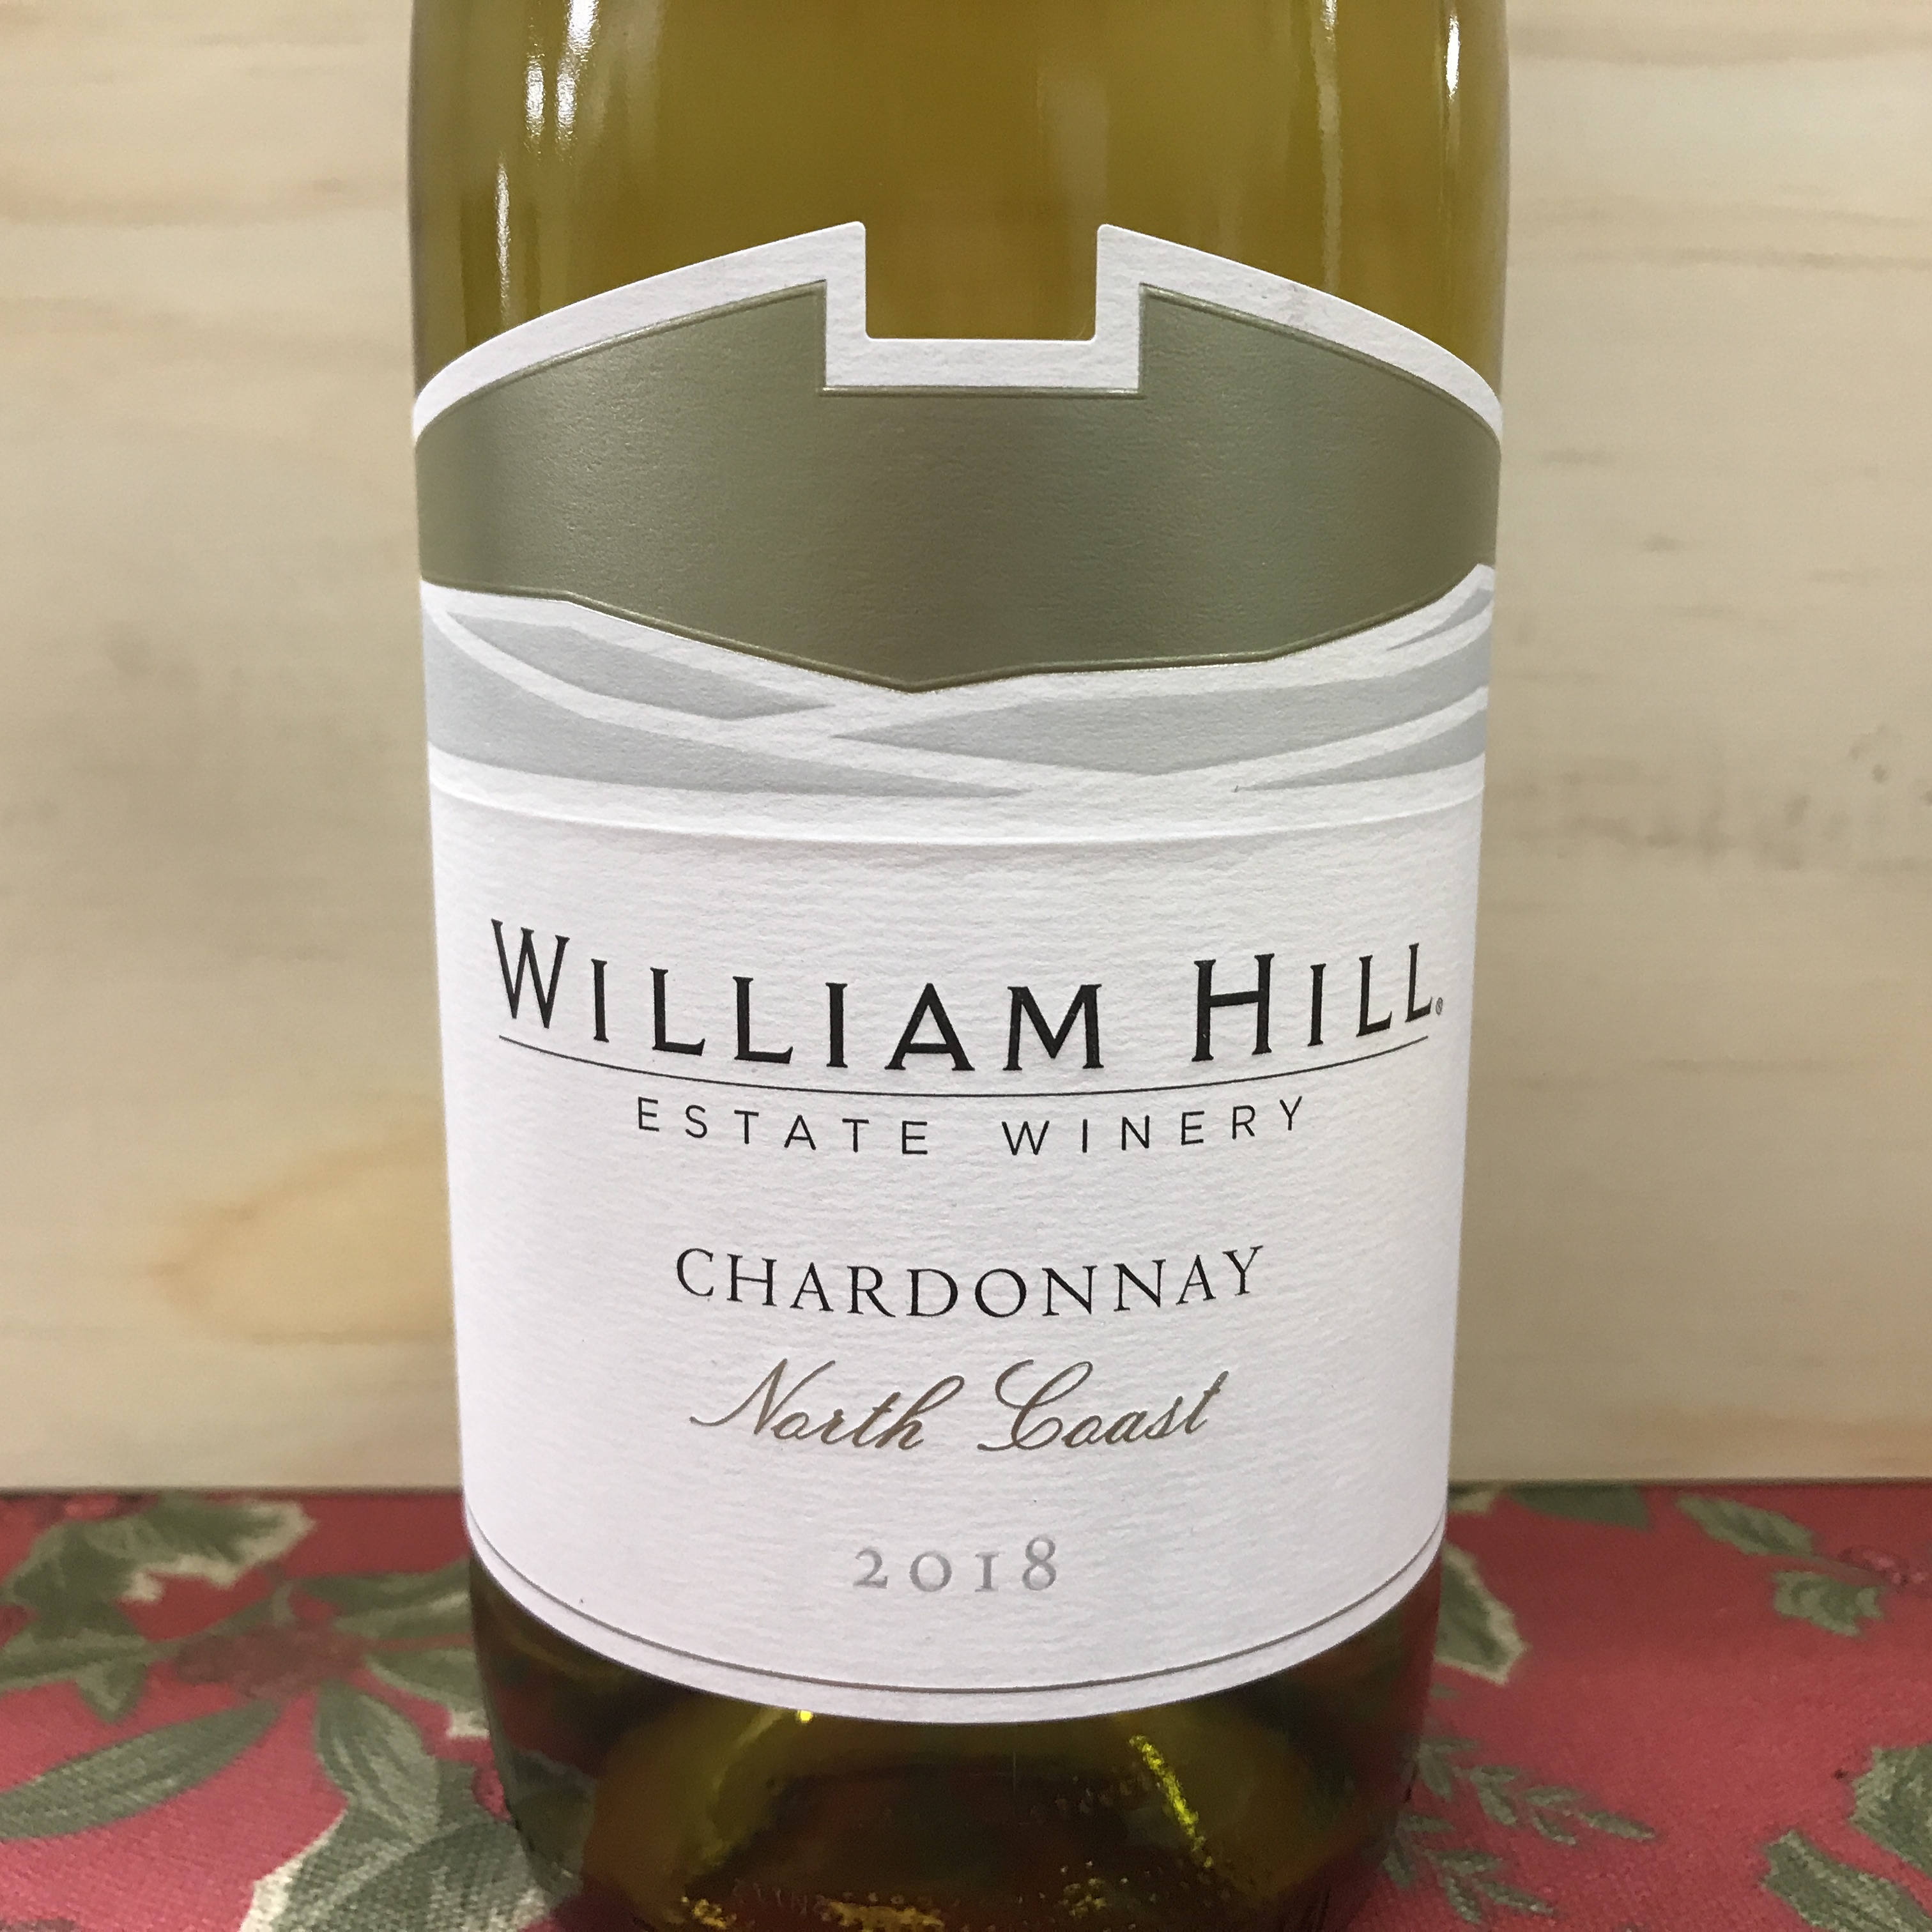 William Hill North Coast Chardonnay 2018